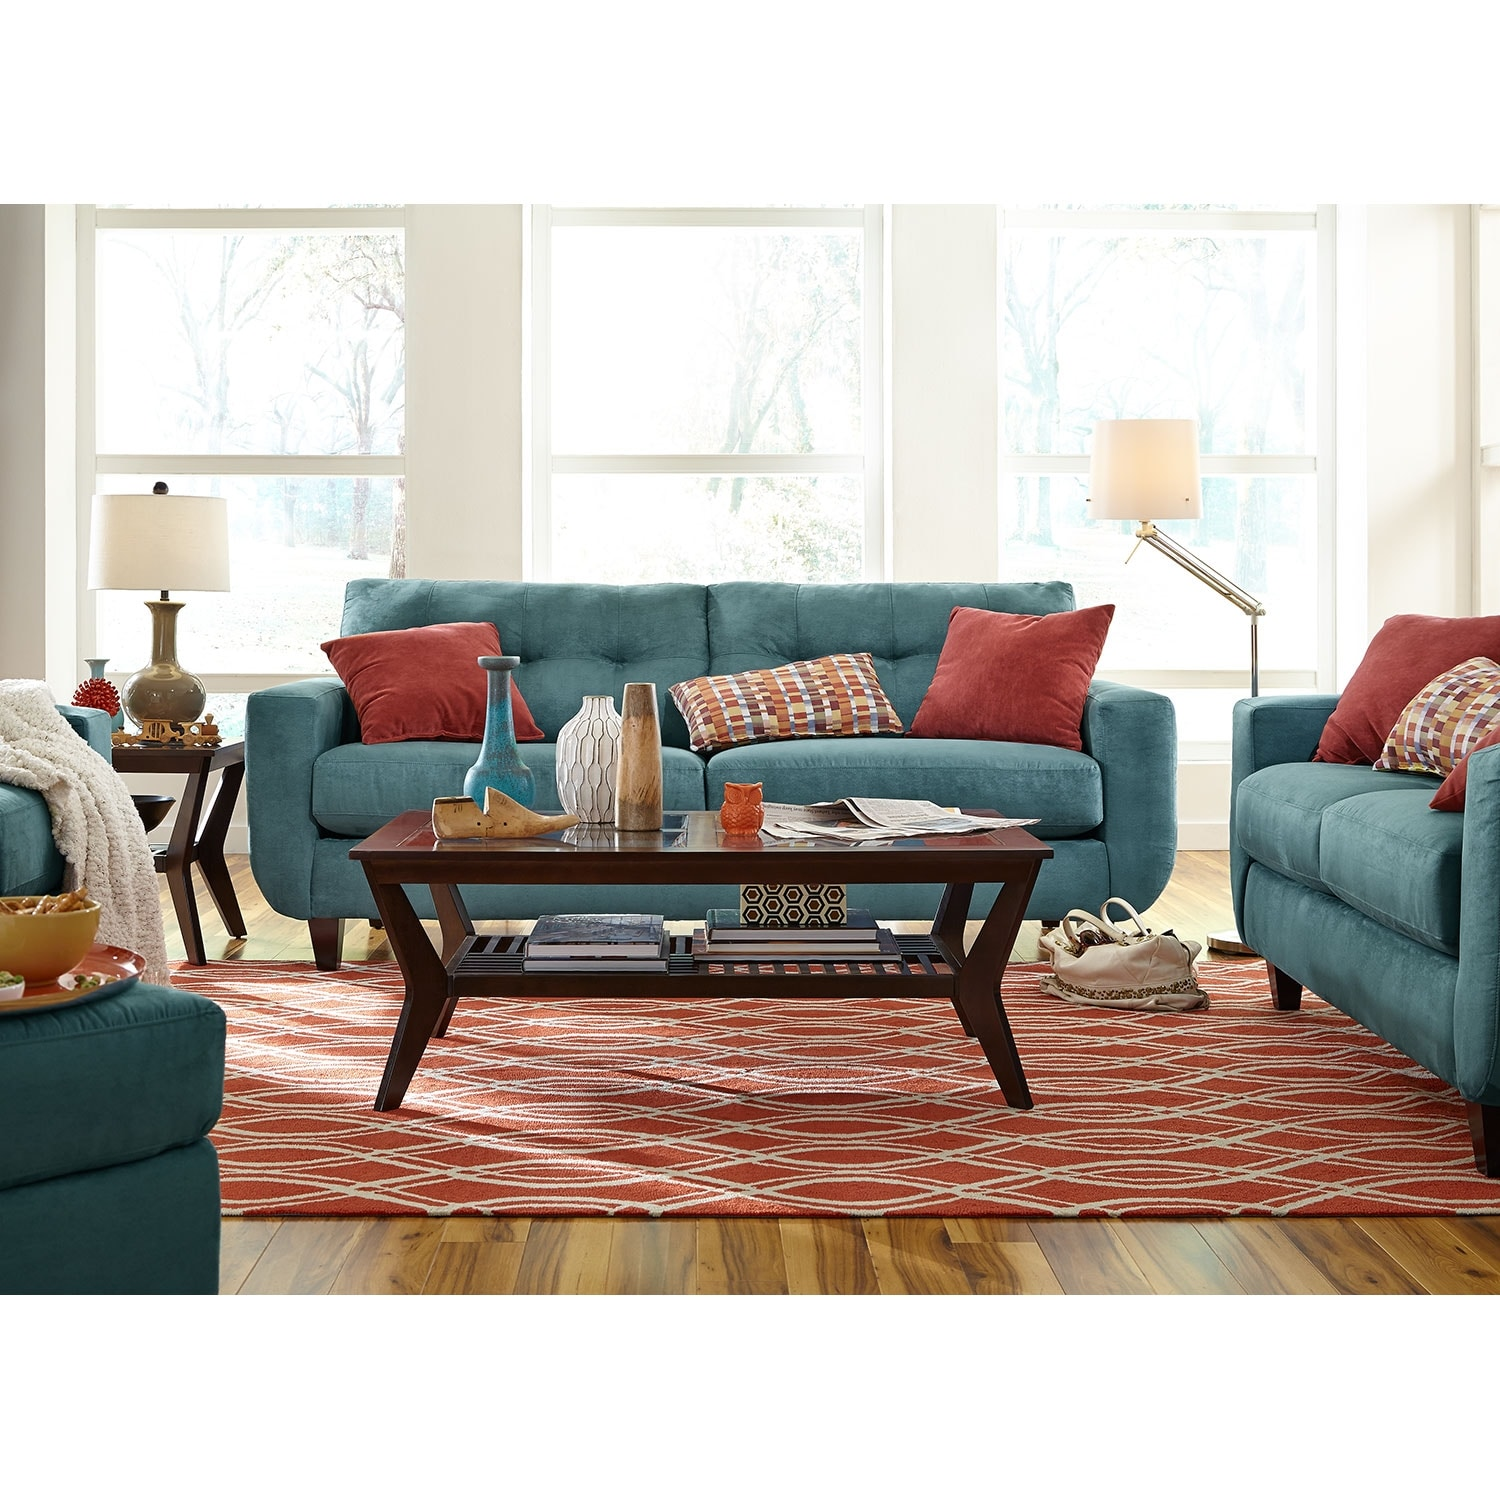 American signature furniture living room home design for American signature couch